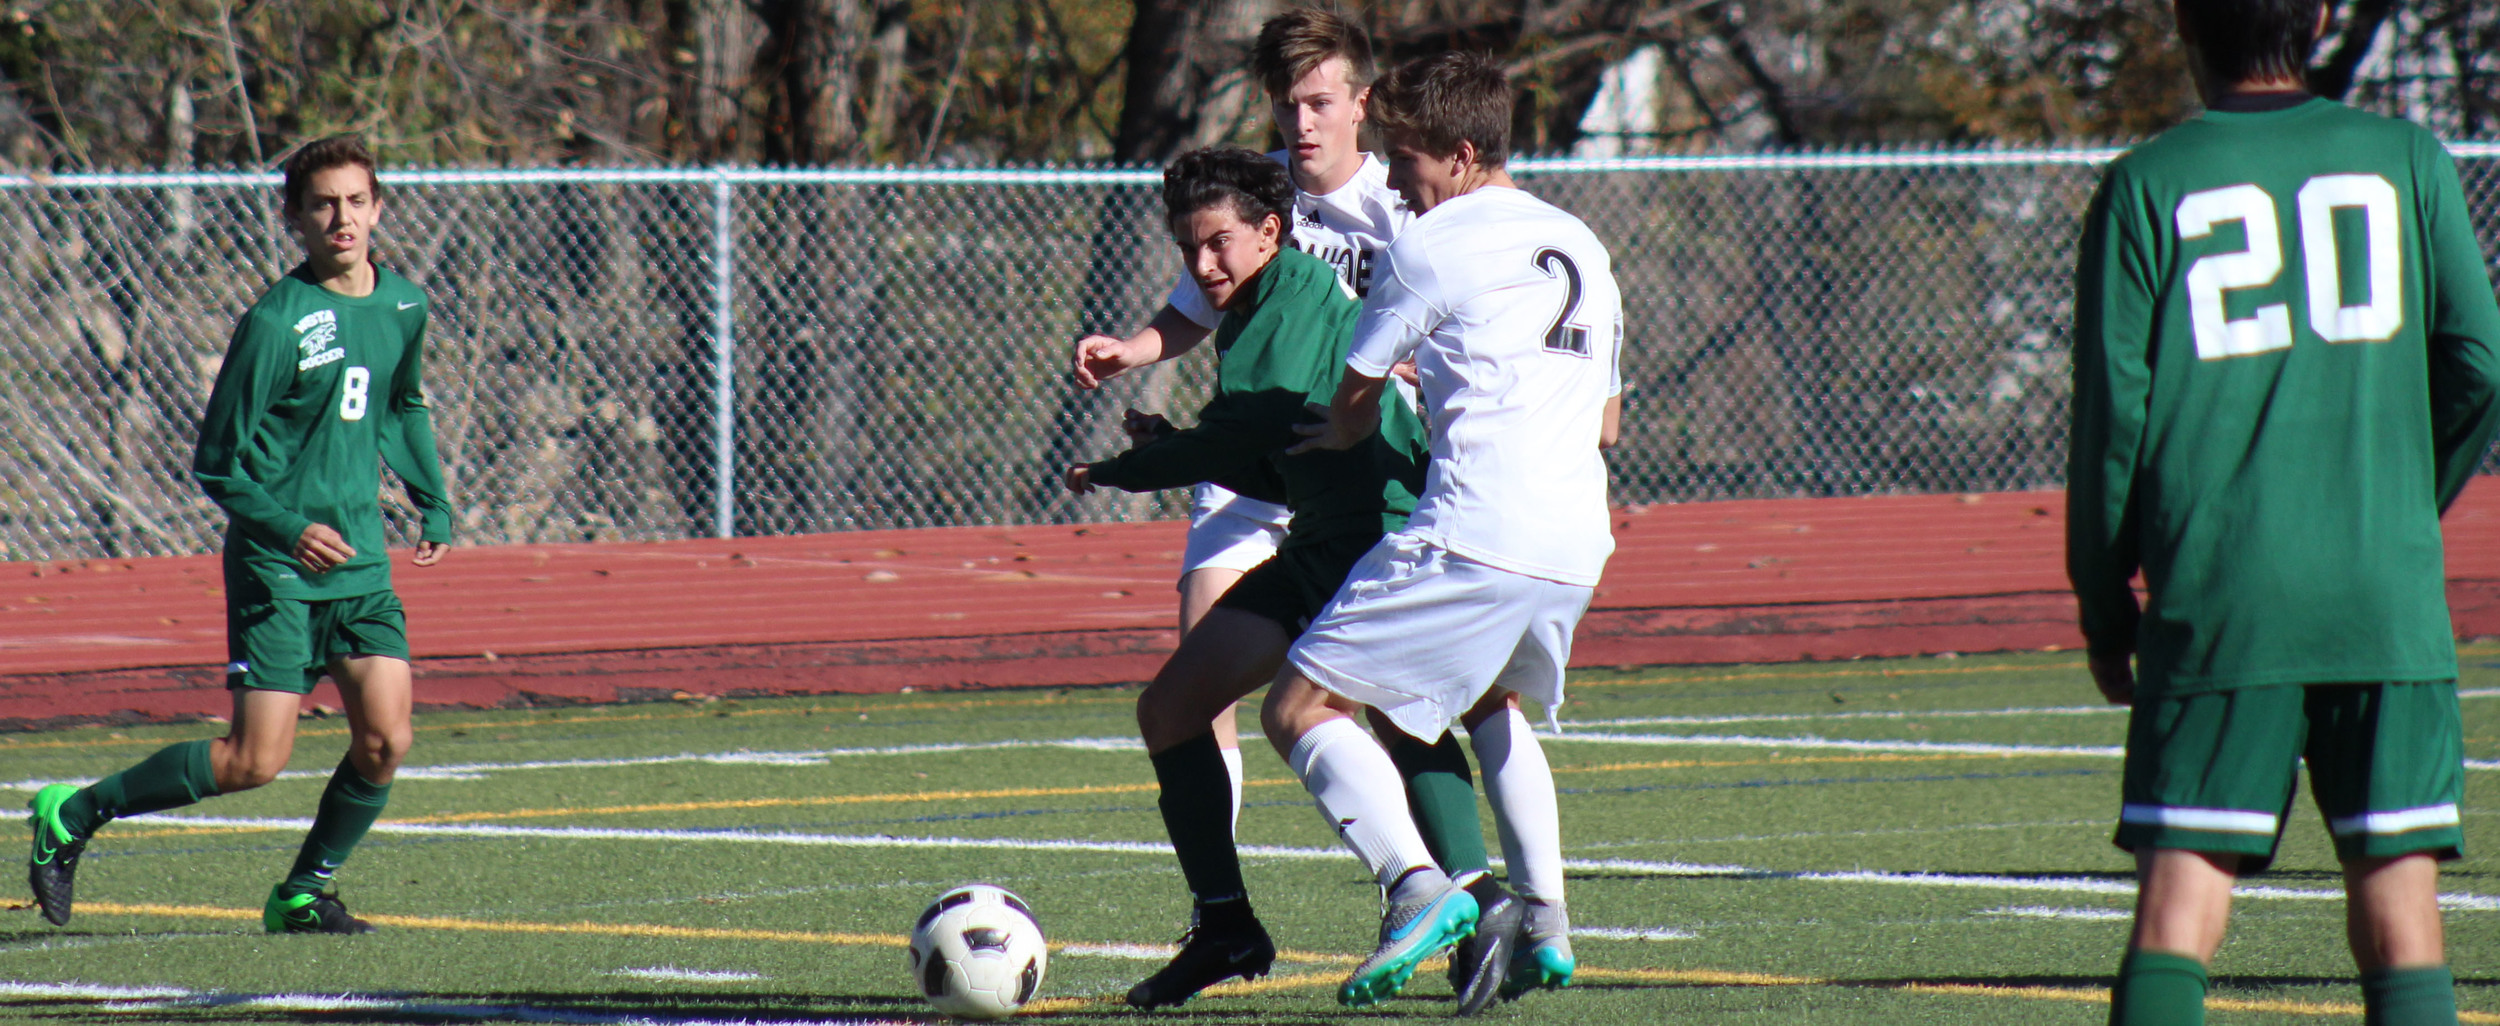 Junior Chase Pacheco dribbles a ball between two Arapahoe defenders during the Great Eight playoff game.